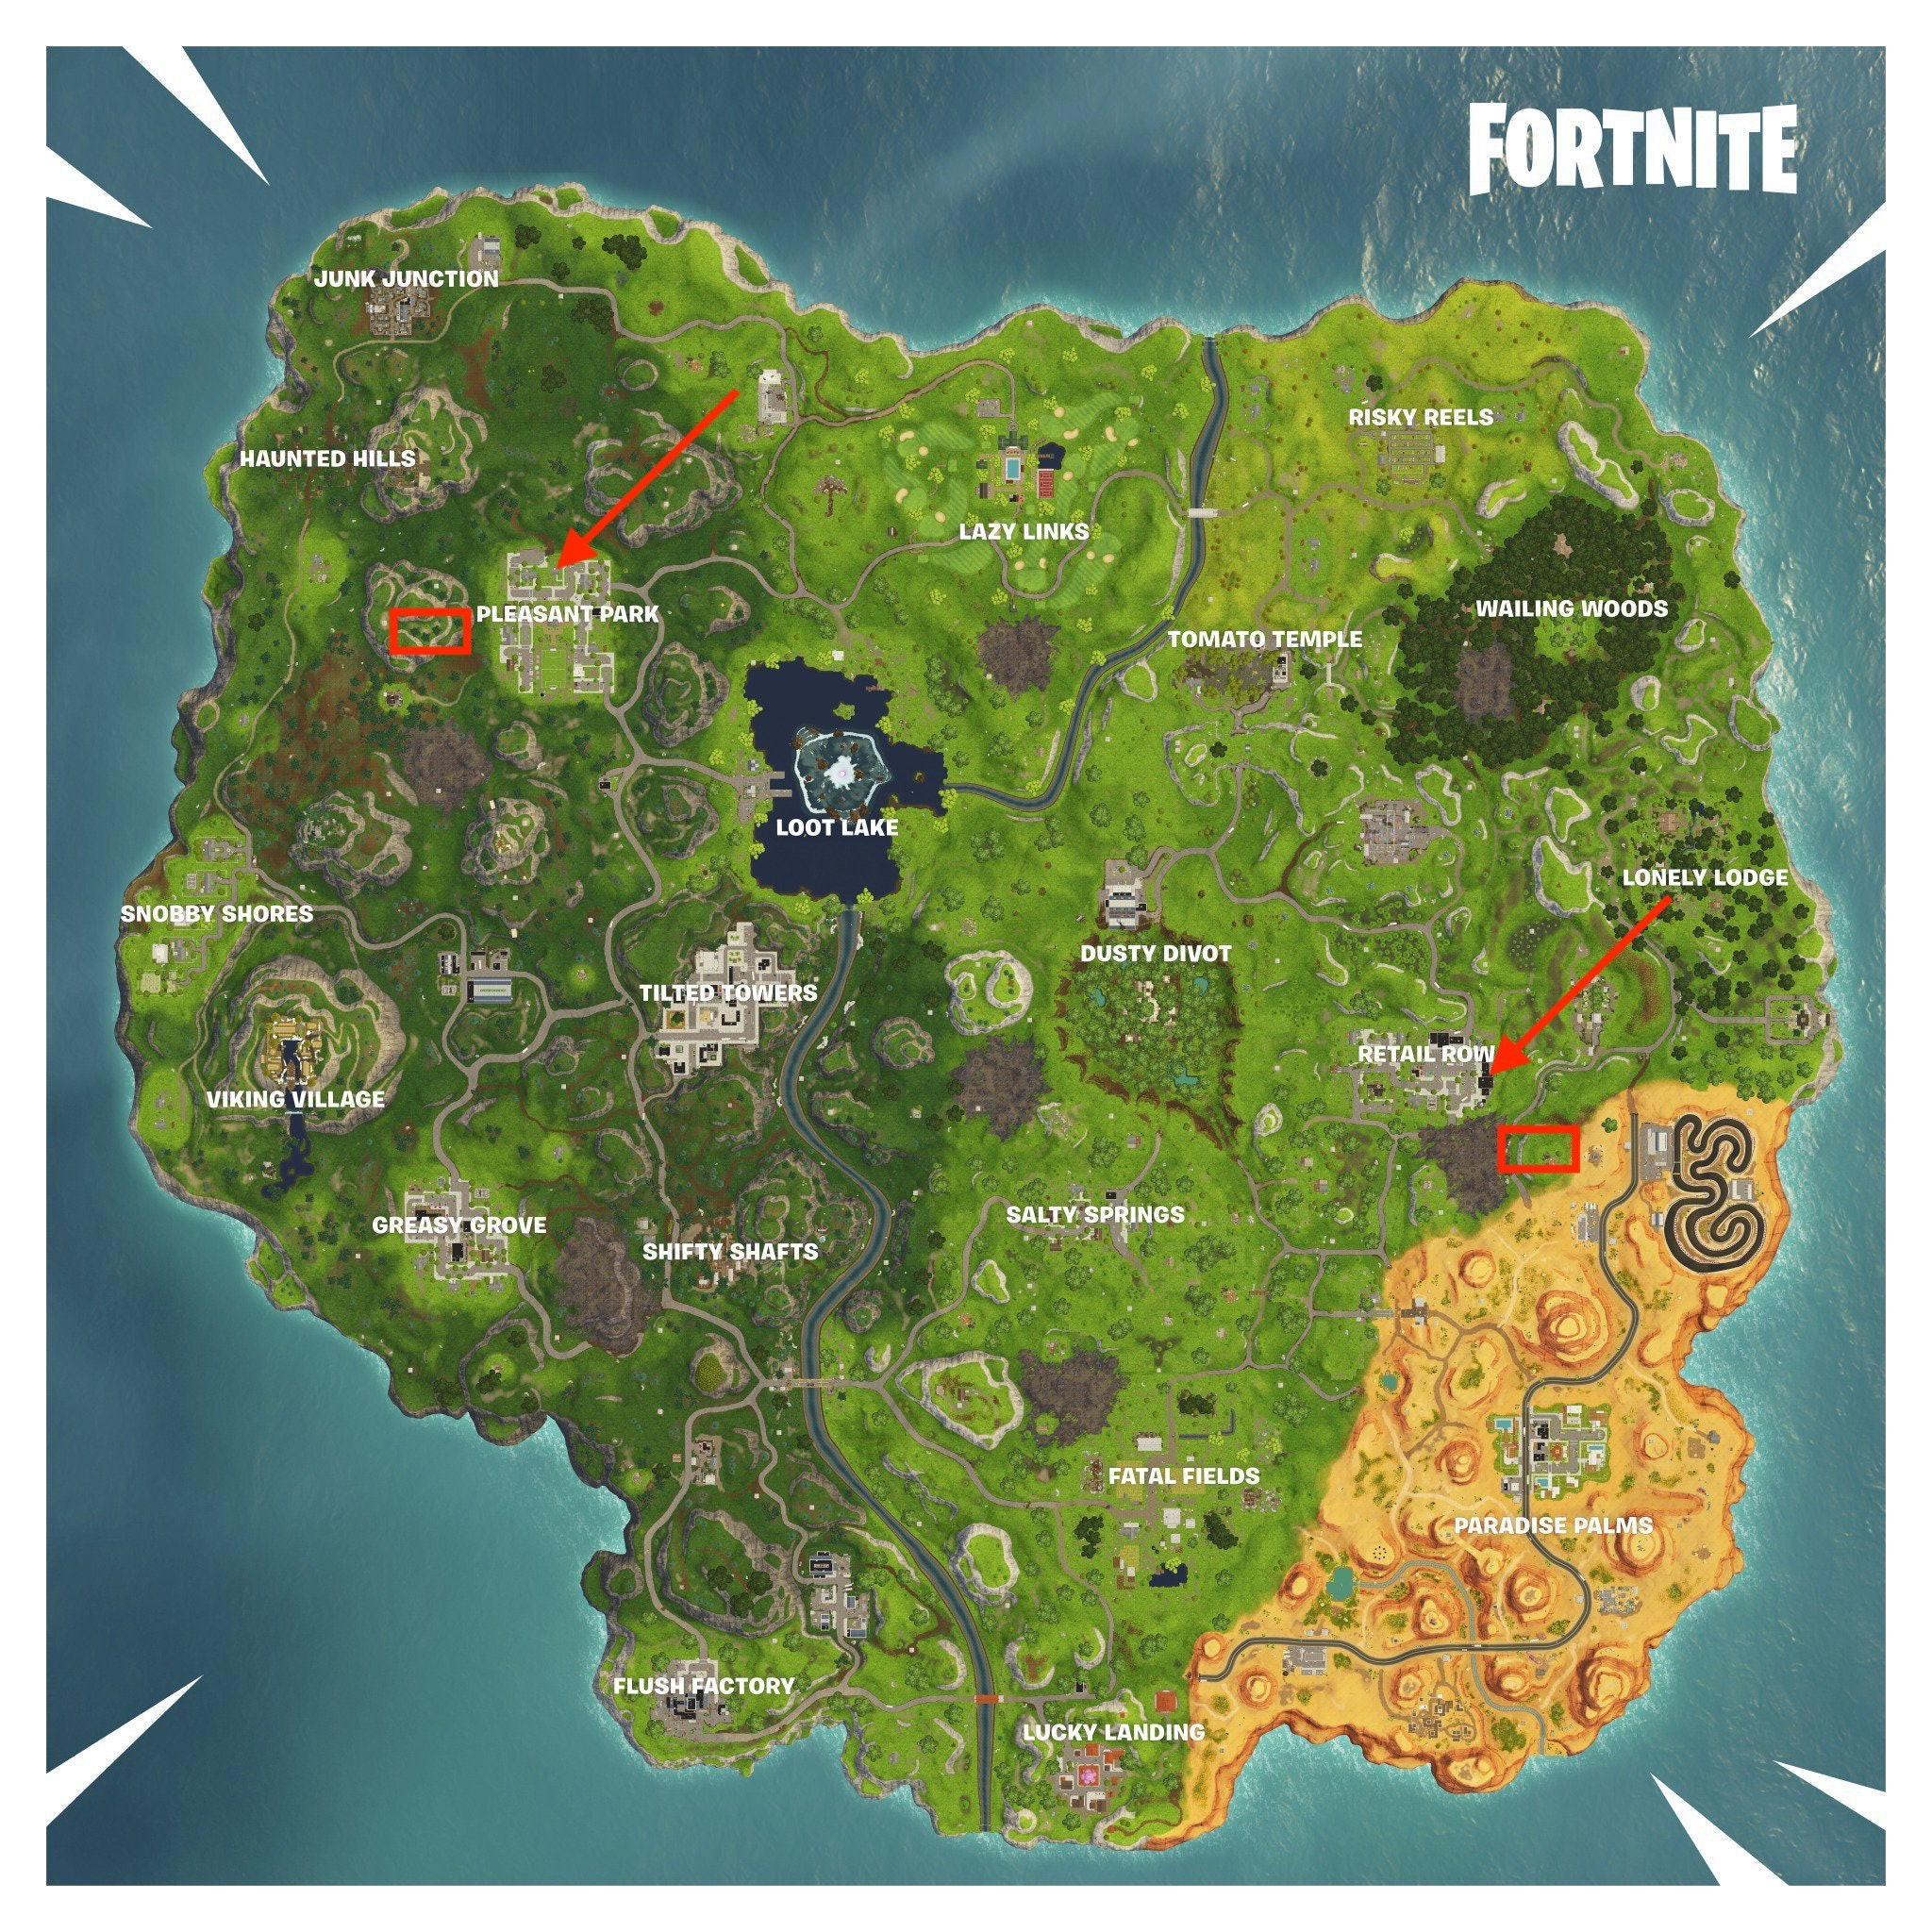 Fortnite Sheet Music Location In Pleasant Park Retail Row Map And Video